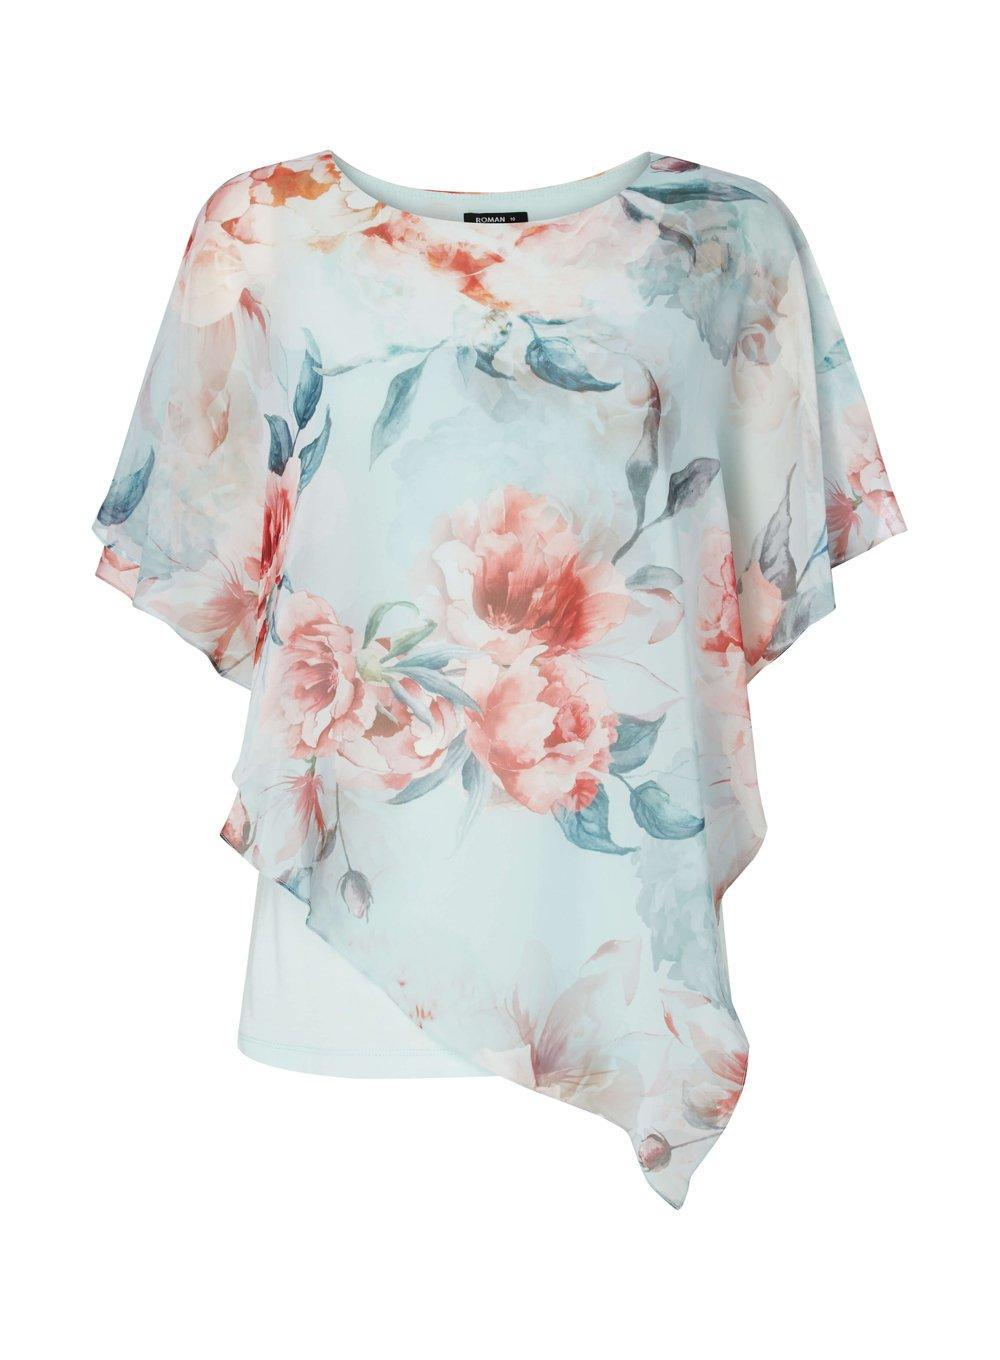 Visit New Cheap Online Free Shipping For Sale Dorothy Perkins Womens *Roman Originals Floral Print Asymmetric Top- Visa Payment Cheap Price Outlet 2018 Unisex BdpnZQDp